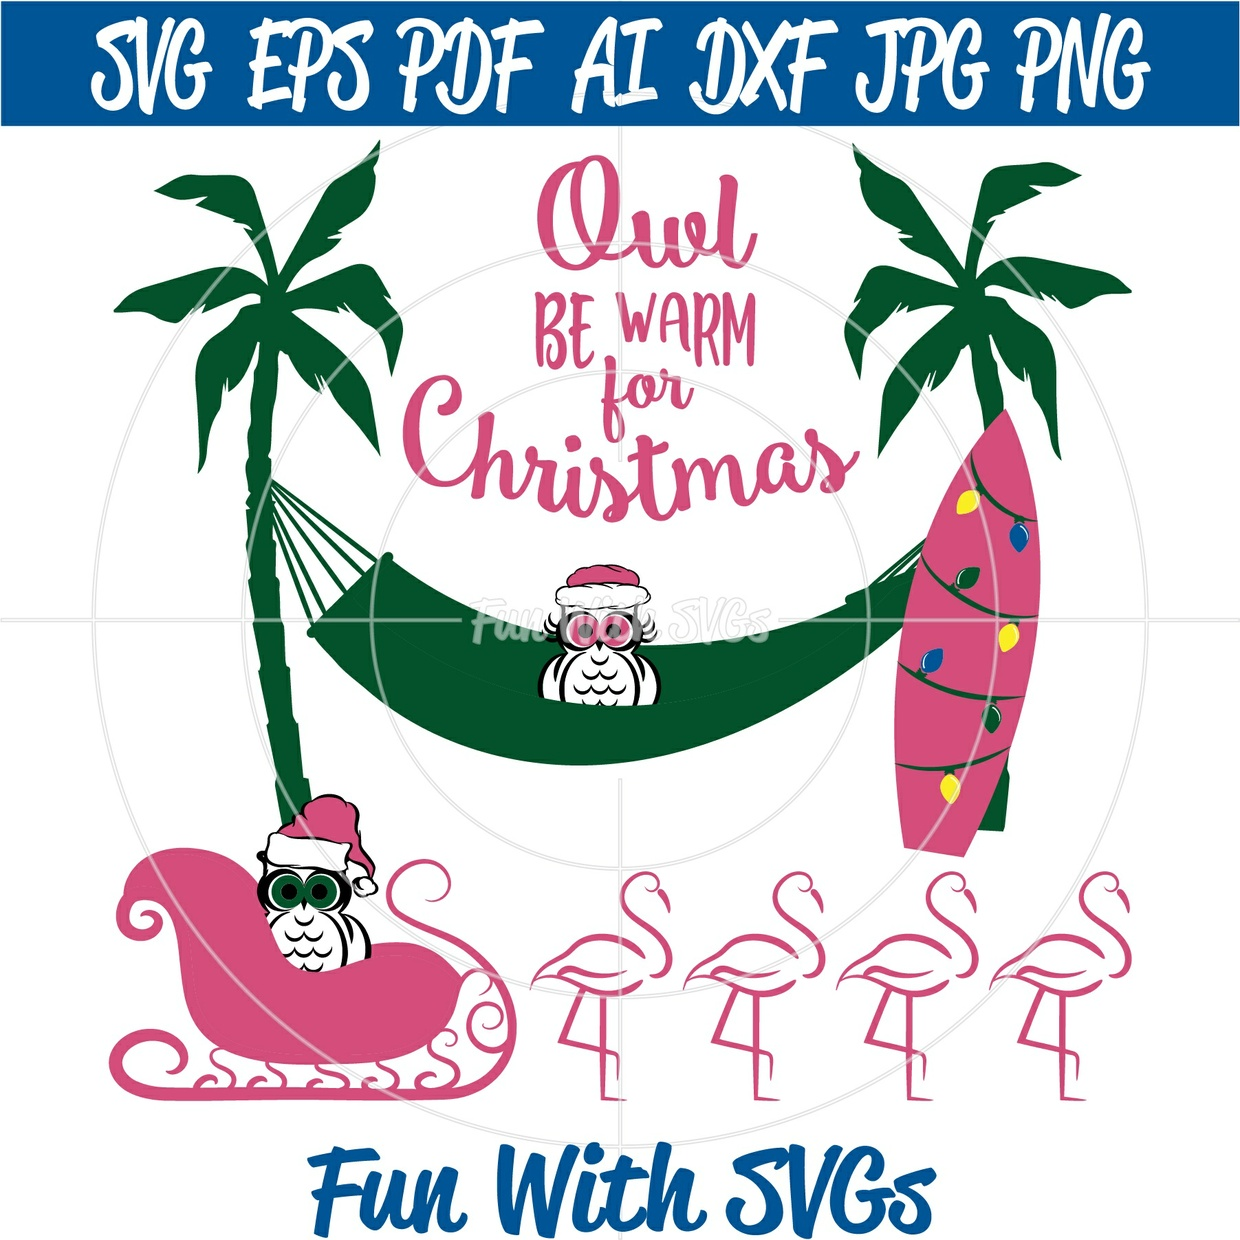 Owl Be Warm For Christmas, Pink Flamingo's, Owls, Santa Owl, Christmas in July